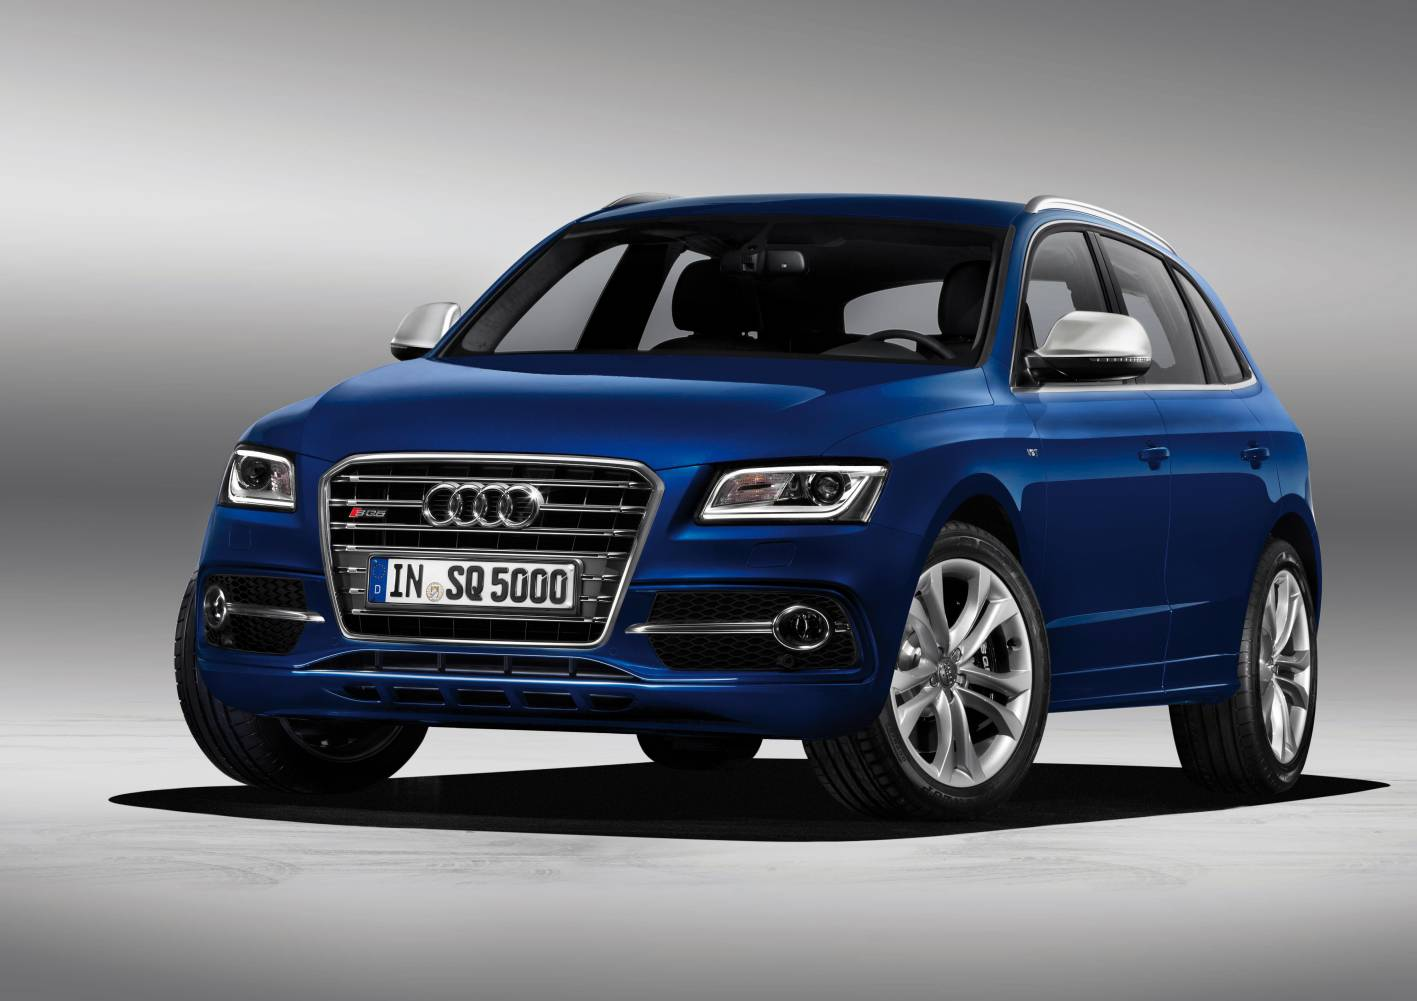 news audi announces twin turbo v6 diesel sq5. Black Bedroom Furniture Sets. Home Design Ideas